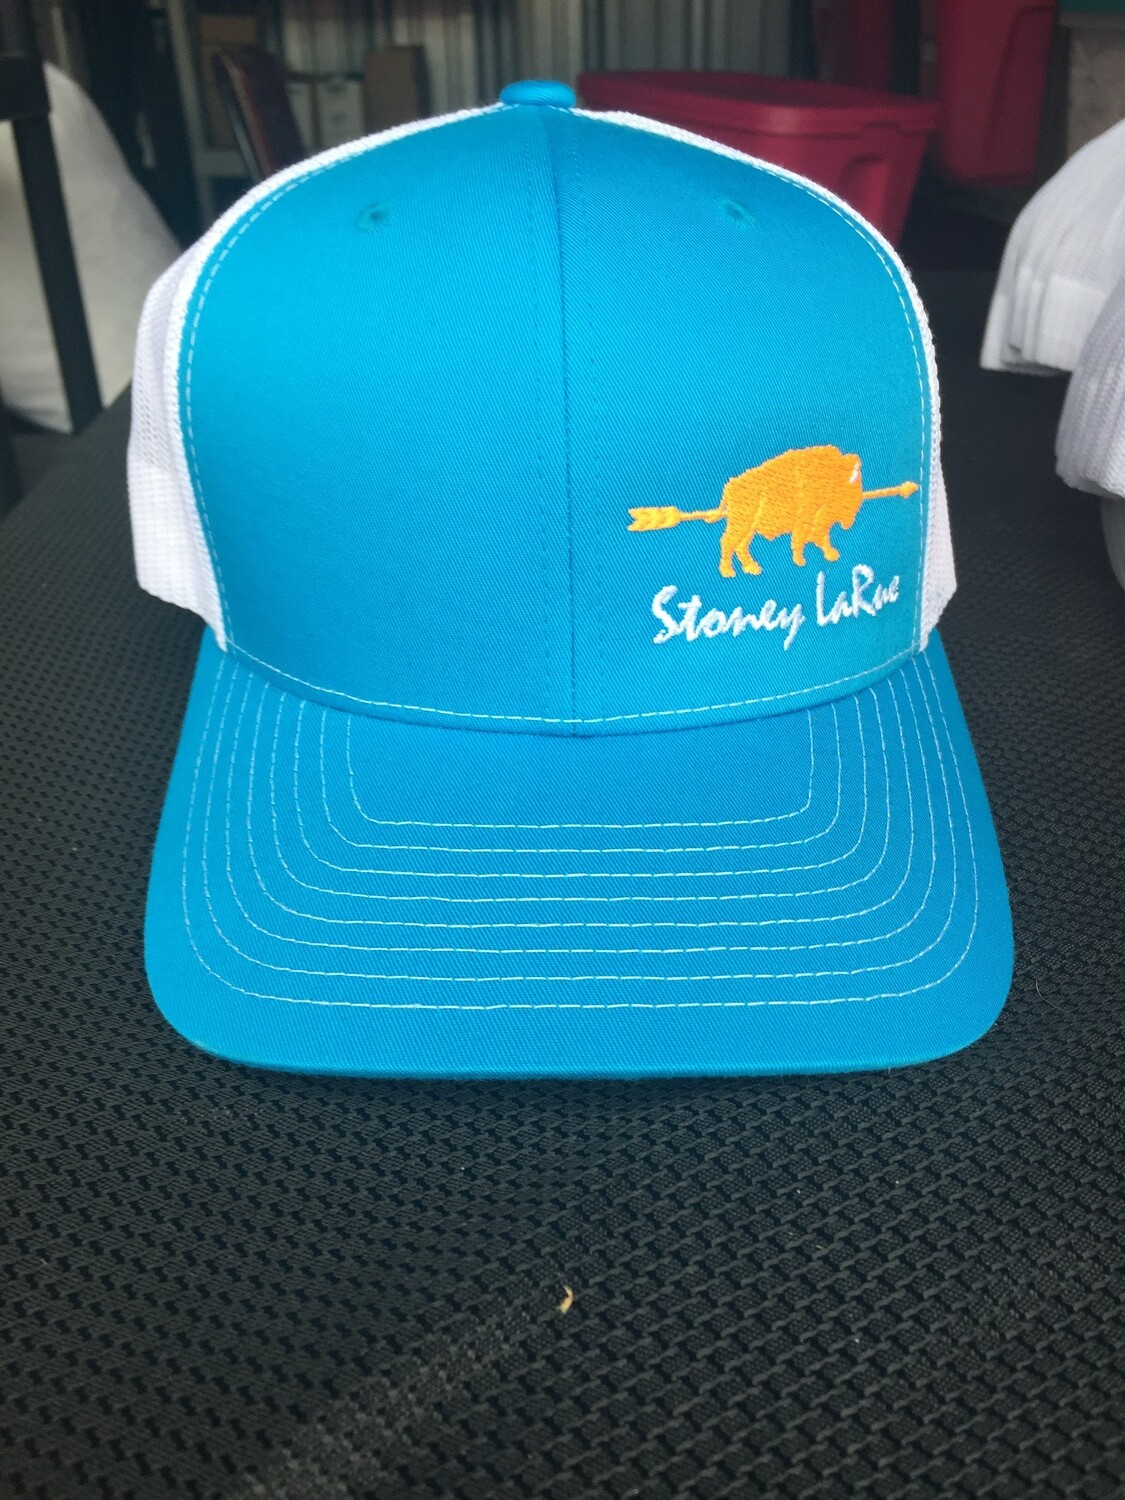 Blue & Orange Buffalo Snapback Stoney LaRue Hat